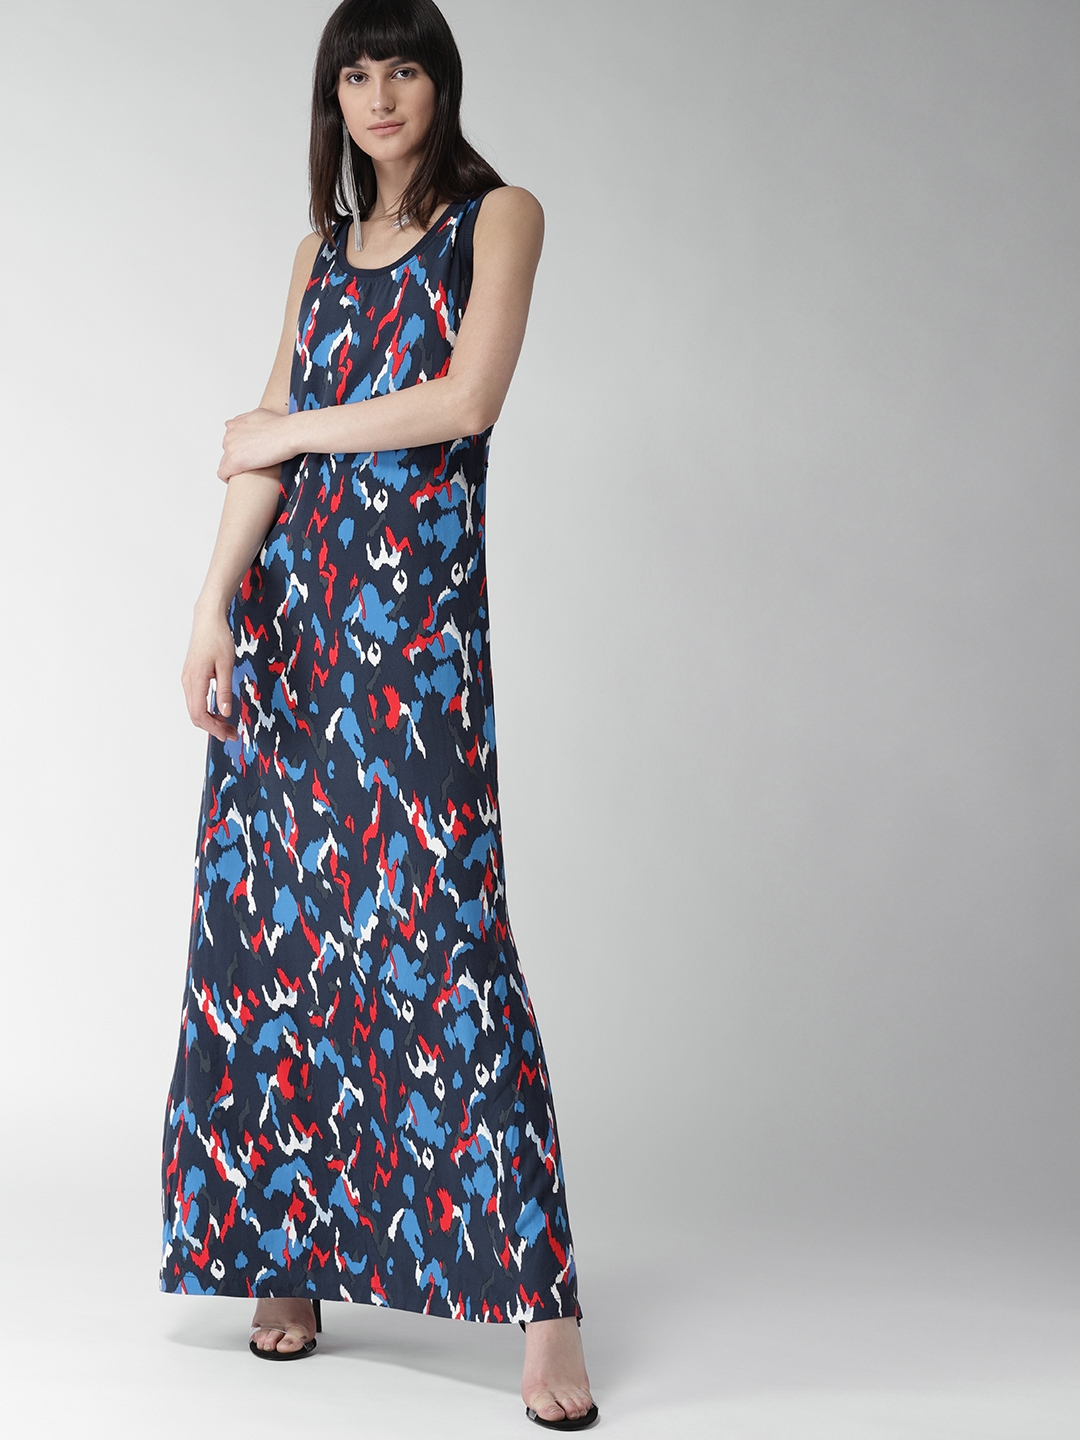 ee6be391273 Buy Tommy Hilfiger Women Navy Blue Printed Maxi Dress - Dresses for ...